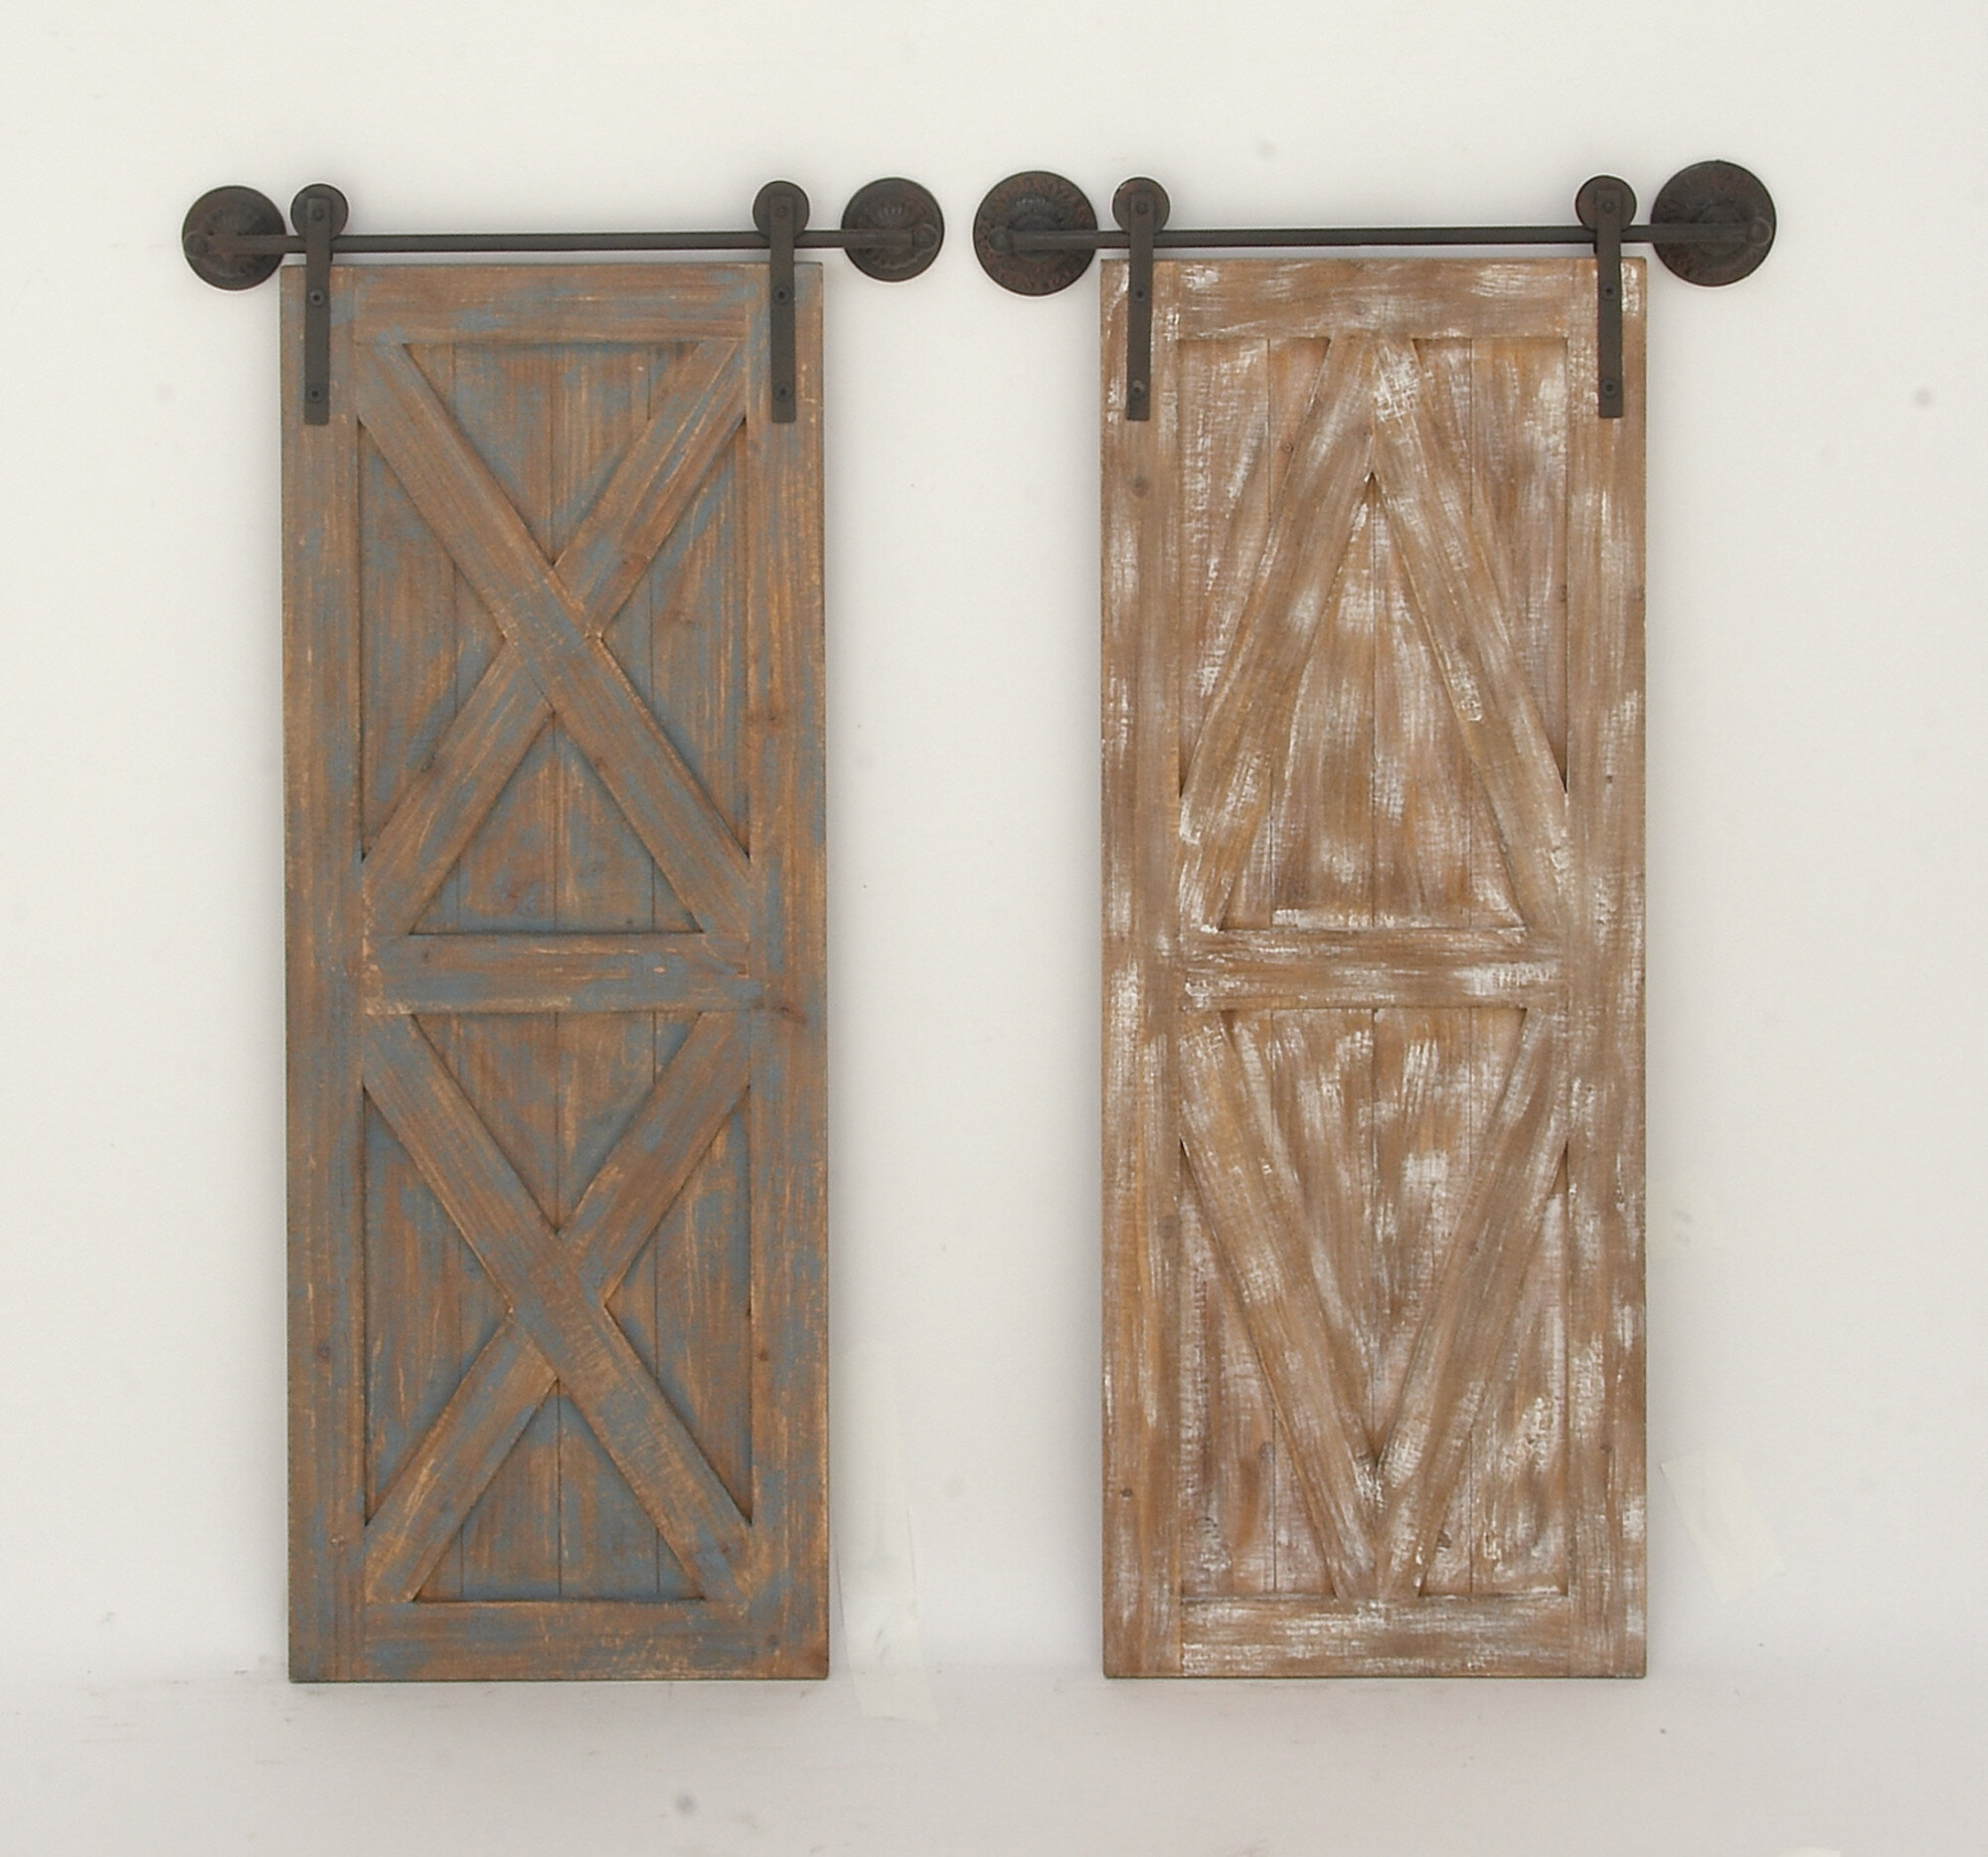 Brown Wood And Metal Wall Decor Within 2020 Cole & Grey 2 Piece Wood/metal Wall Décor & Reviews (Gallery 9 of 20)